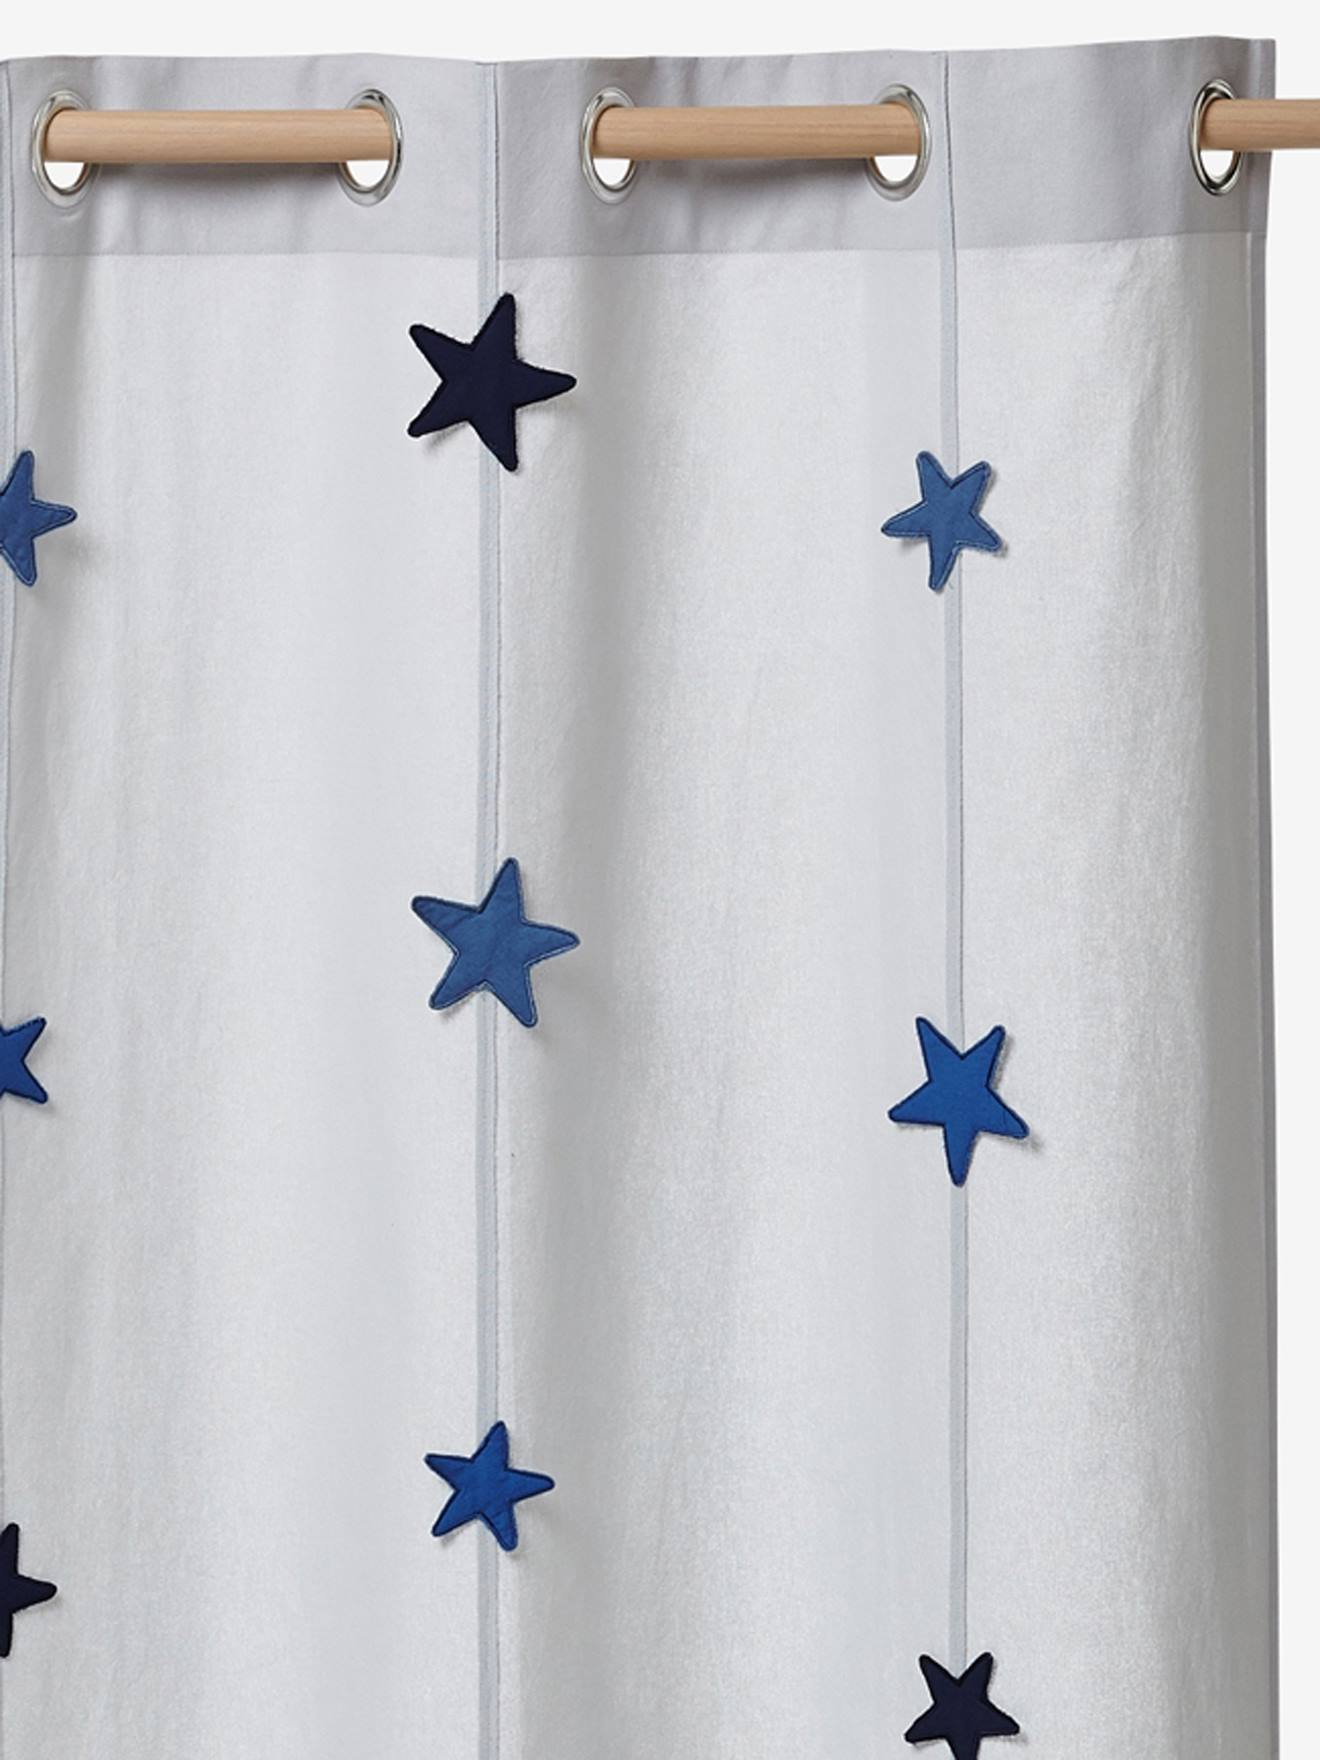 Boys Curtain Adventurer Theme Grey Stars Bedding Decor Vertbaudet